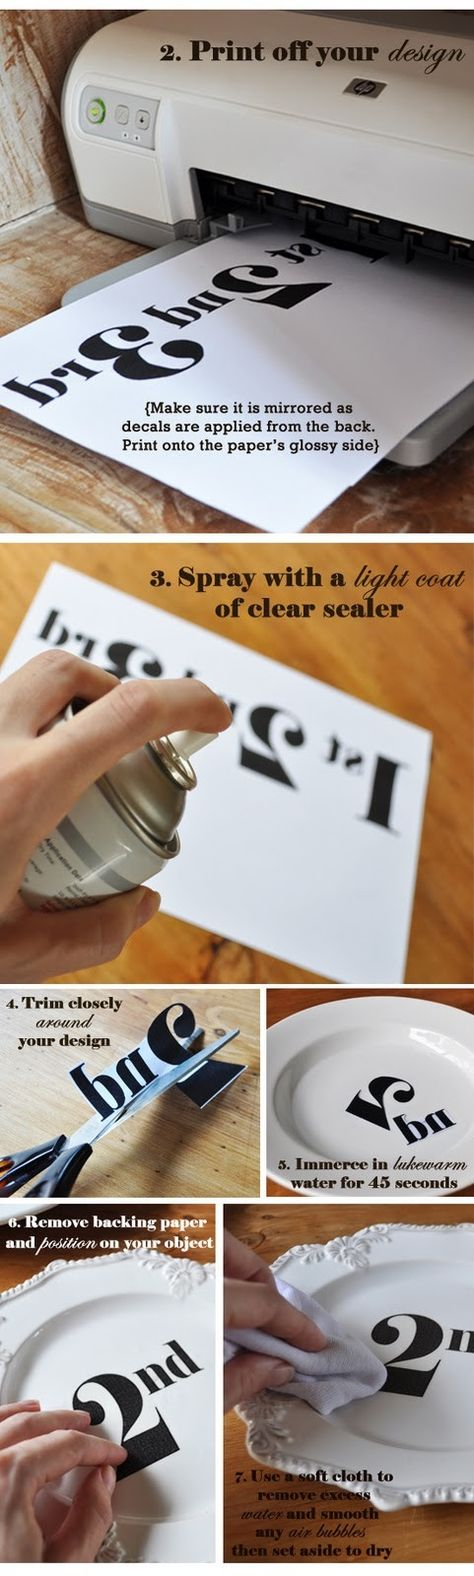 DIY transfer decal tutorial! by lindsey.bolton.562